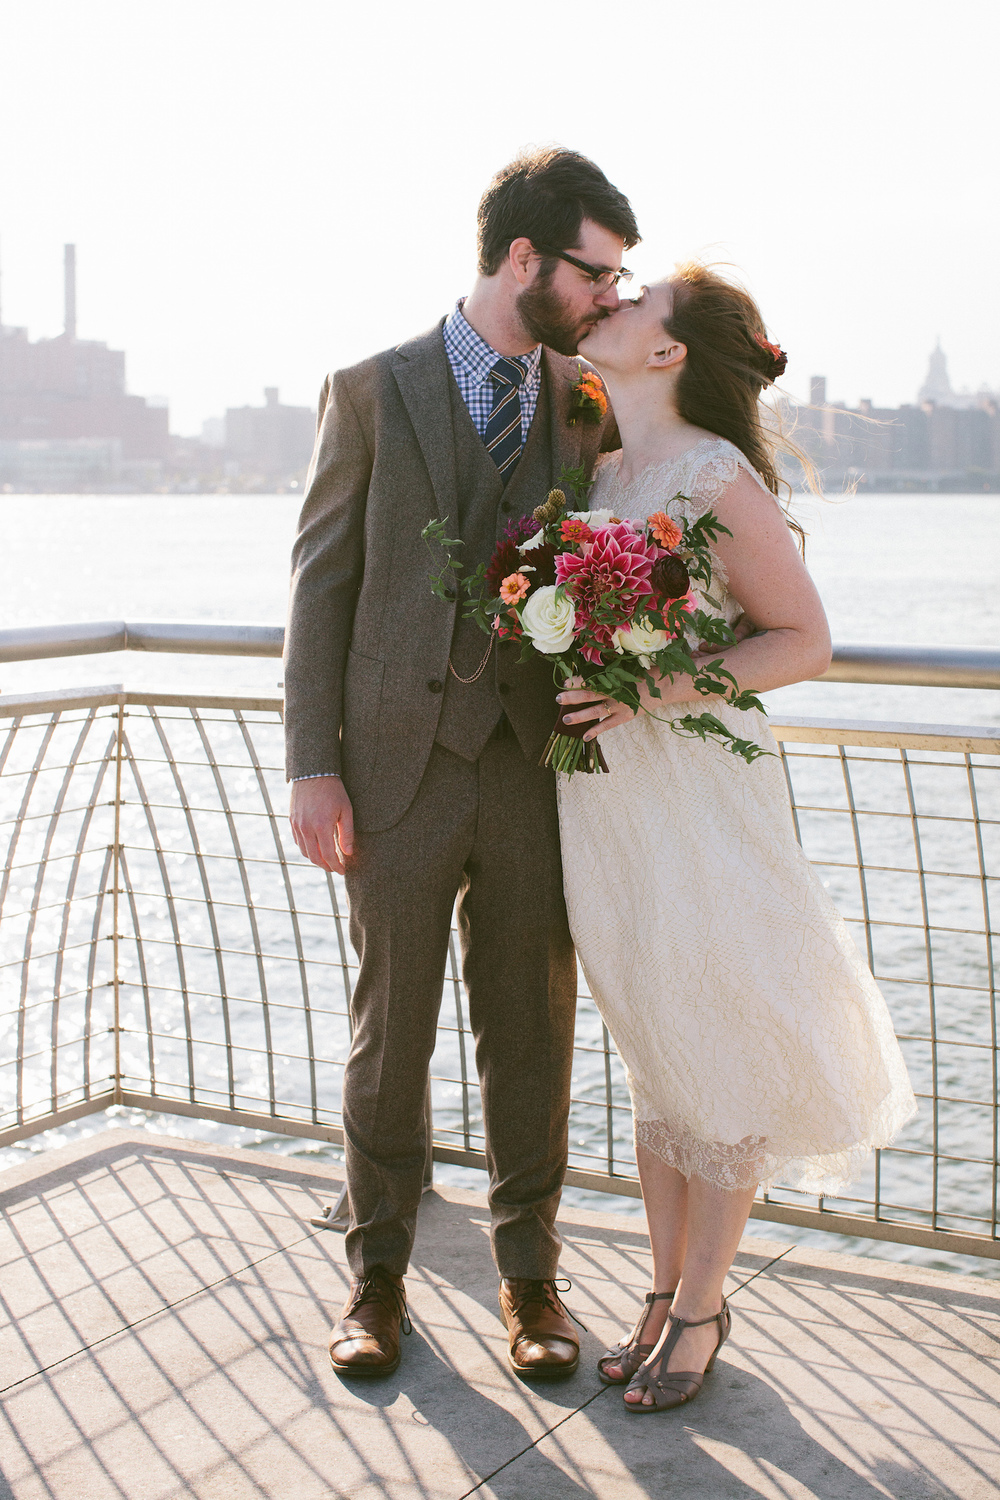 Full Aperture Floral & Corey Torpie Photography  - Brooklyn Wedding - 53.jpeg